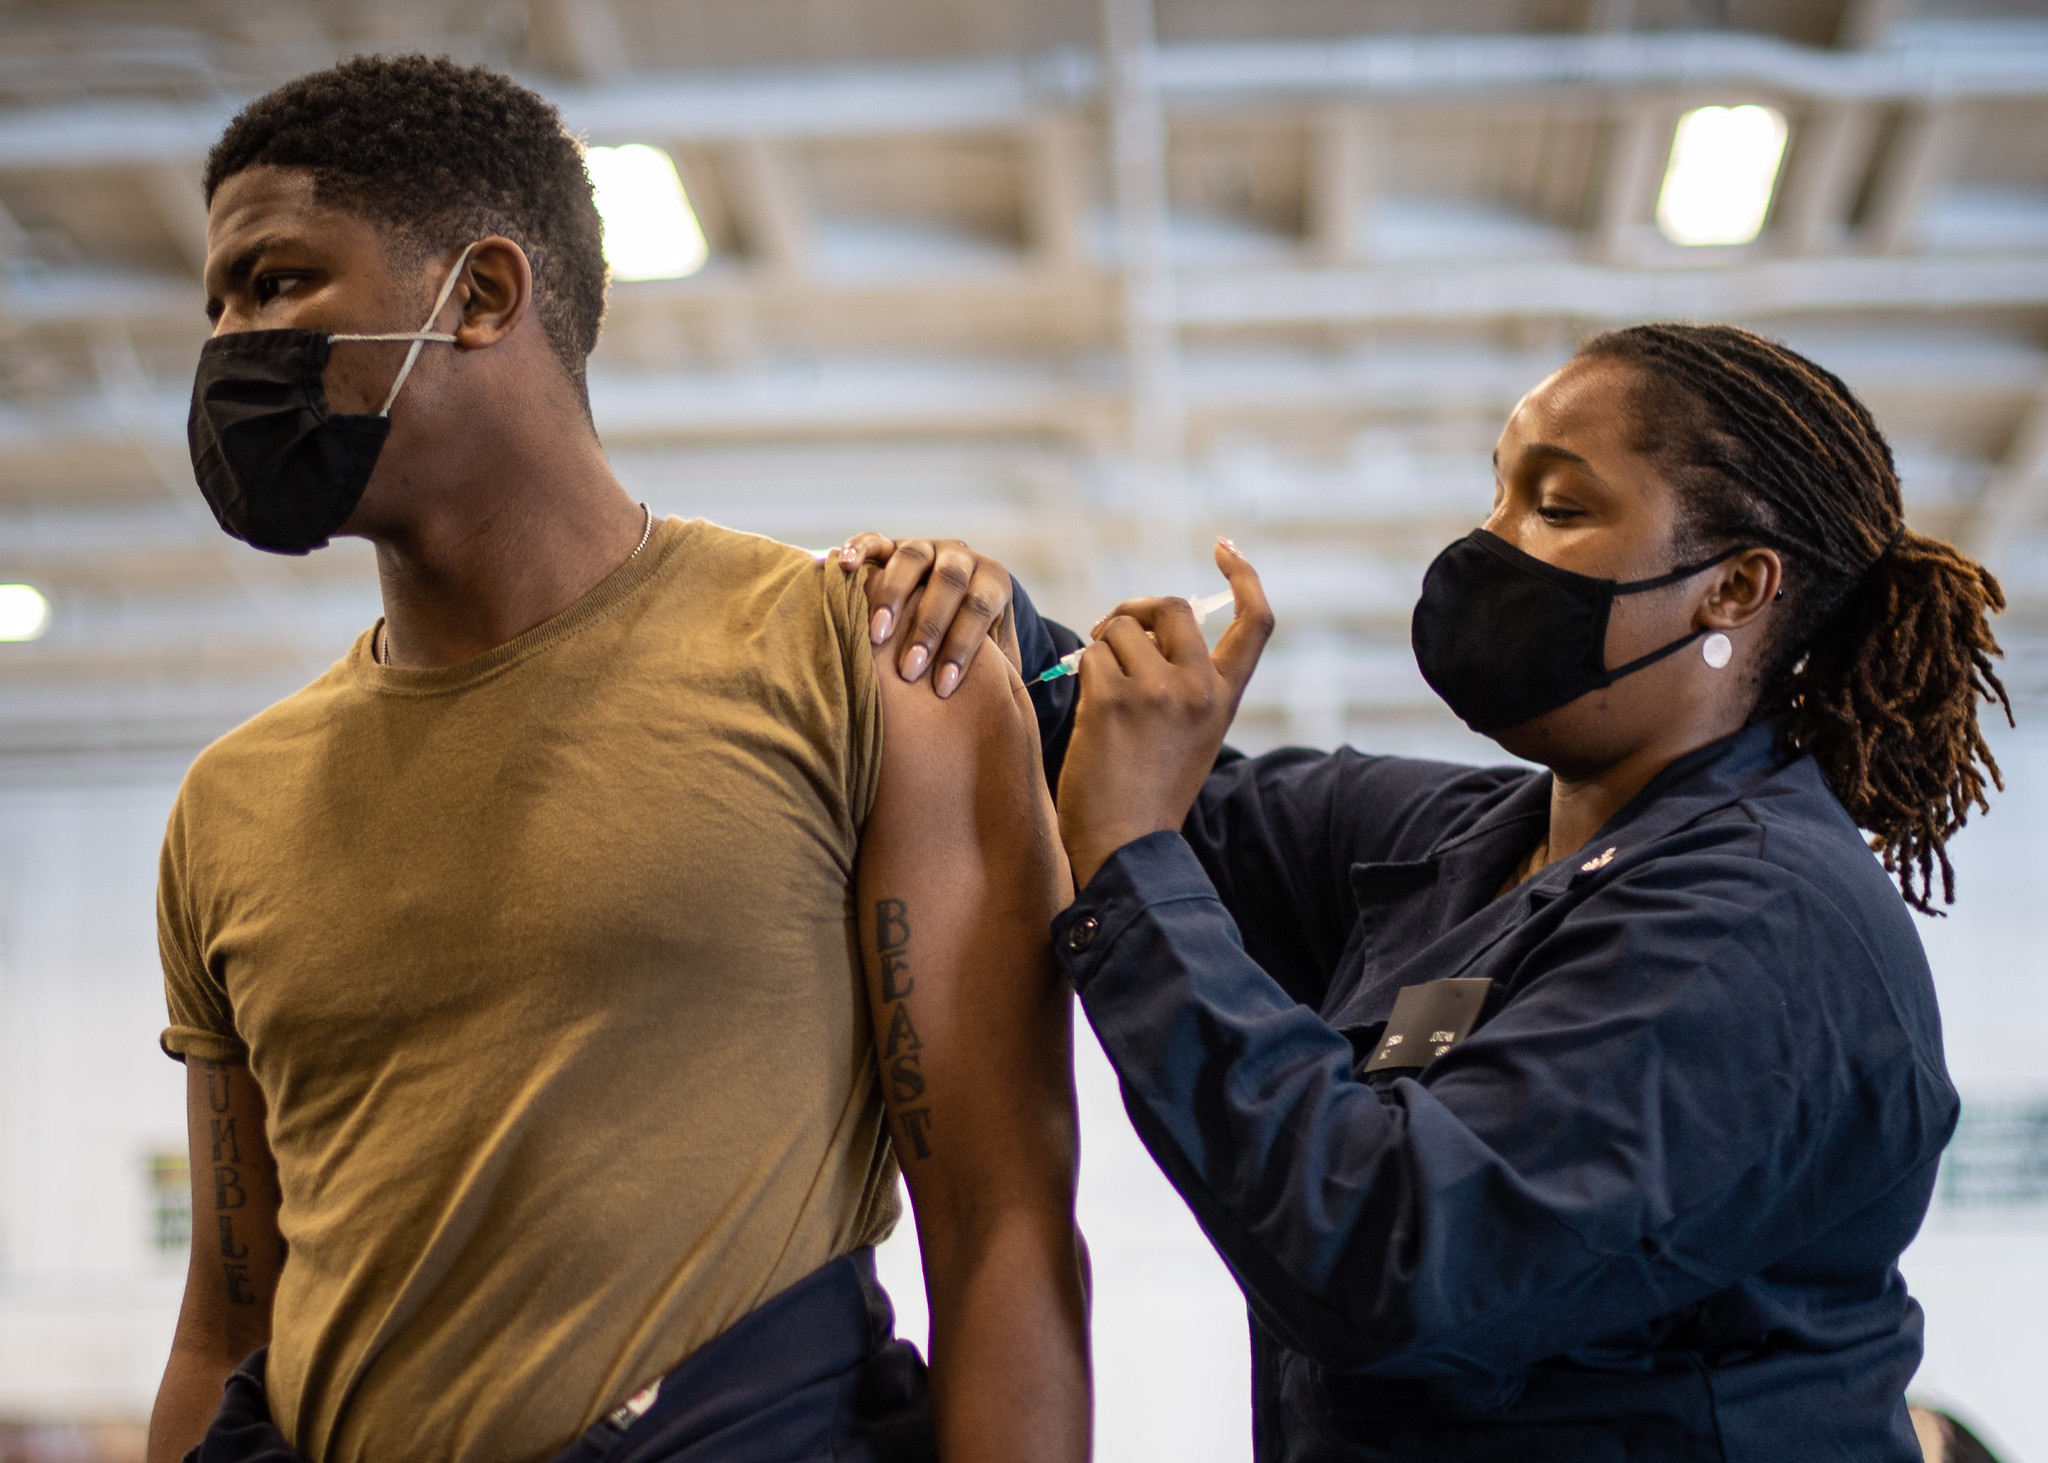 Hospital Corpsman 2nd Class Desirra Jordan administers a flu shot to Aviation Maintenance Administrationman 2nd Class Logan Ray in the hangar bay of the aircraft carrier USS Theodore Roosevelt (CVN 71), Oct. 15, 2020. (MC2 Zachary Wheeler/Navy)